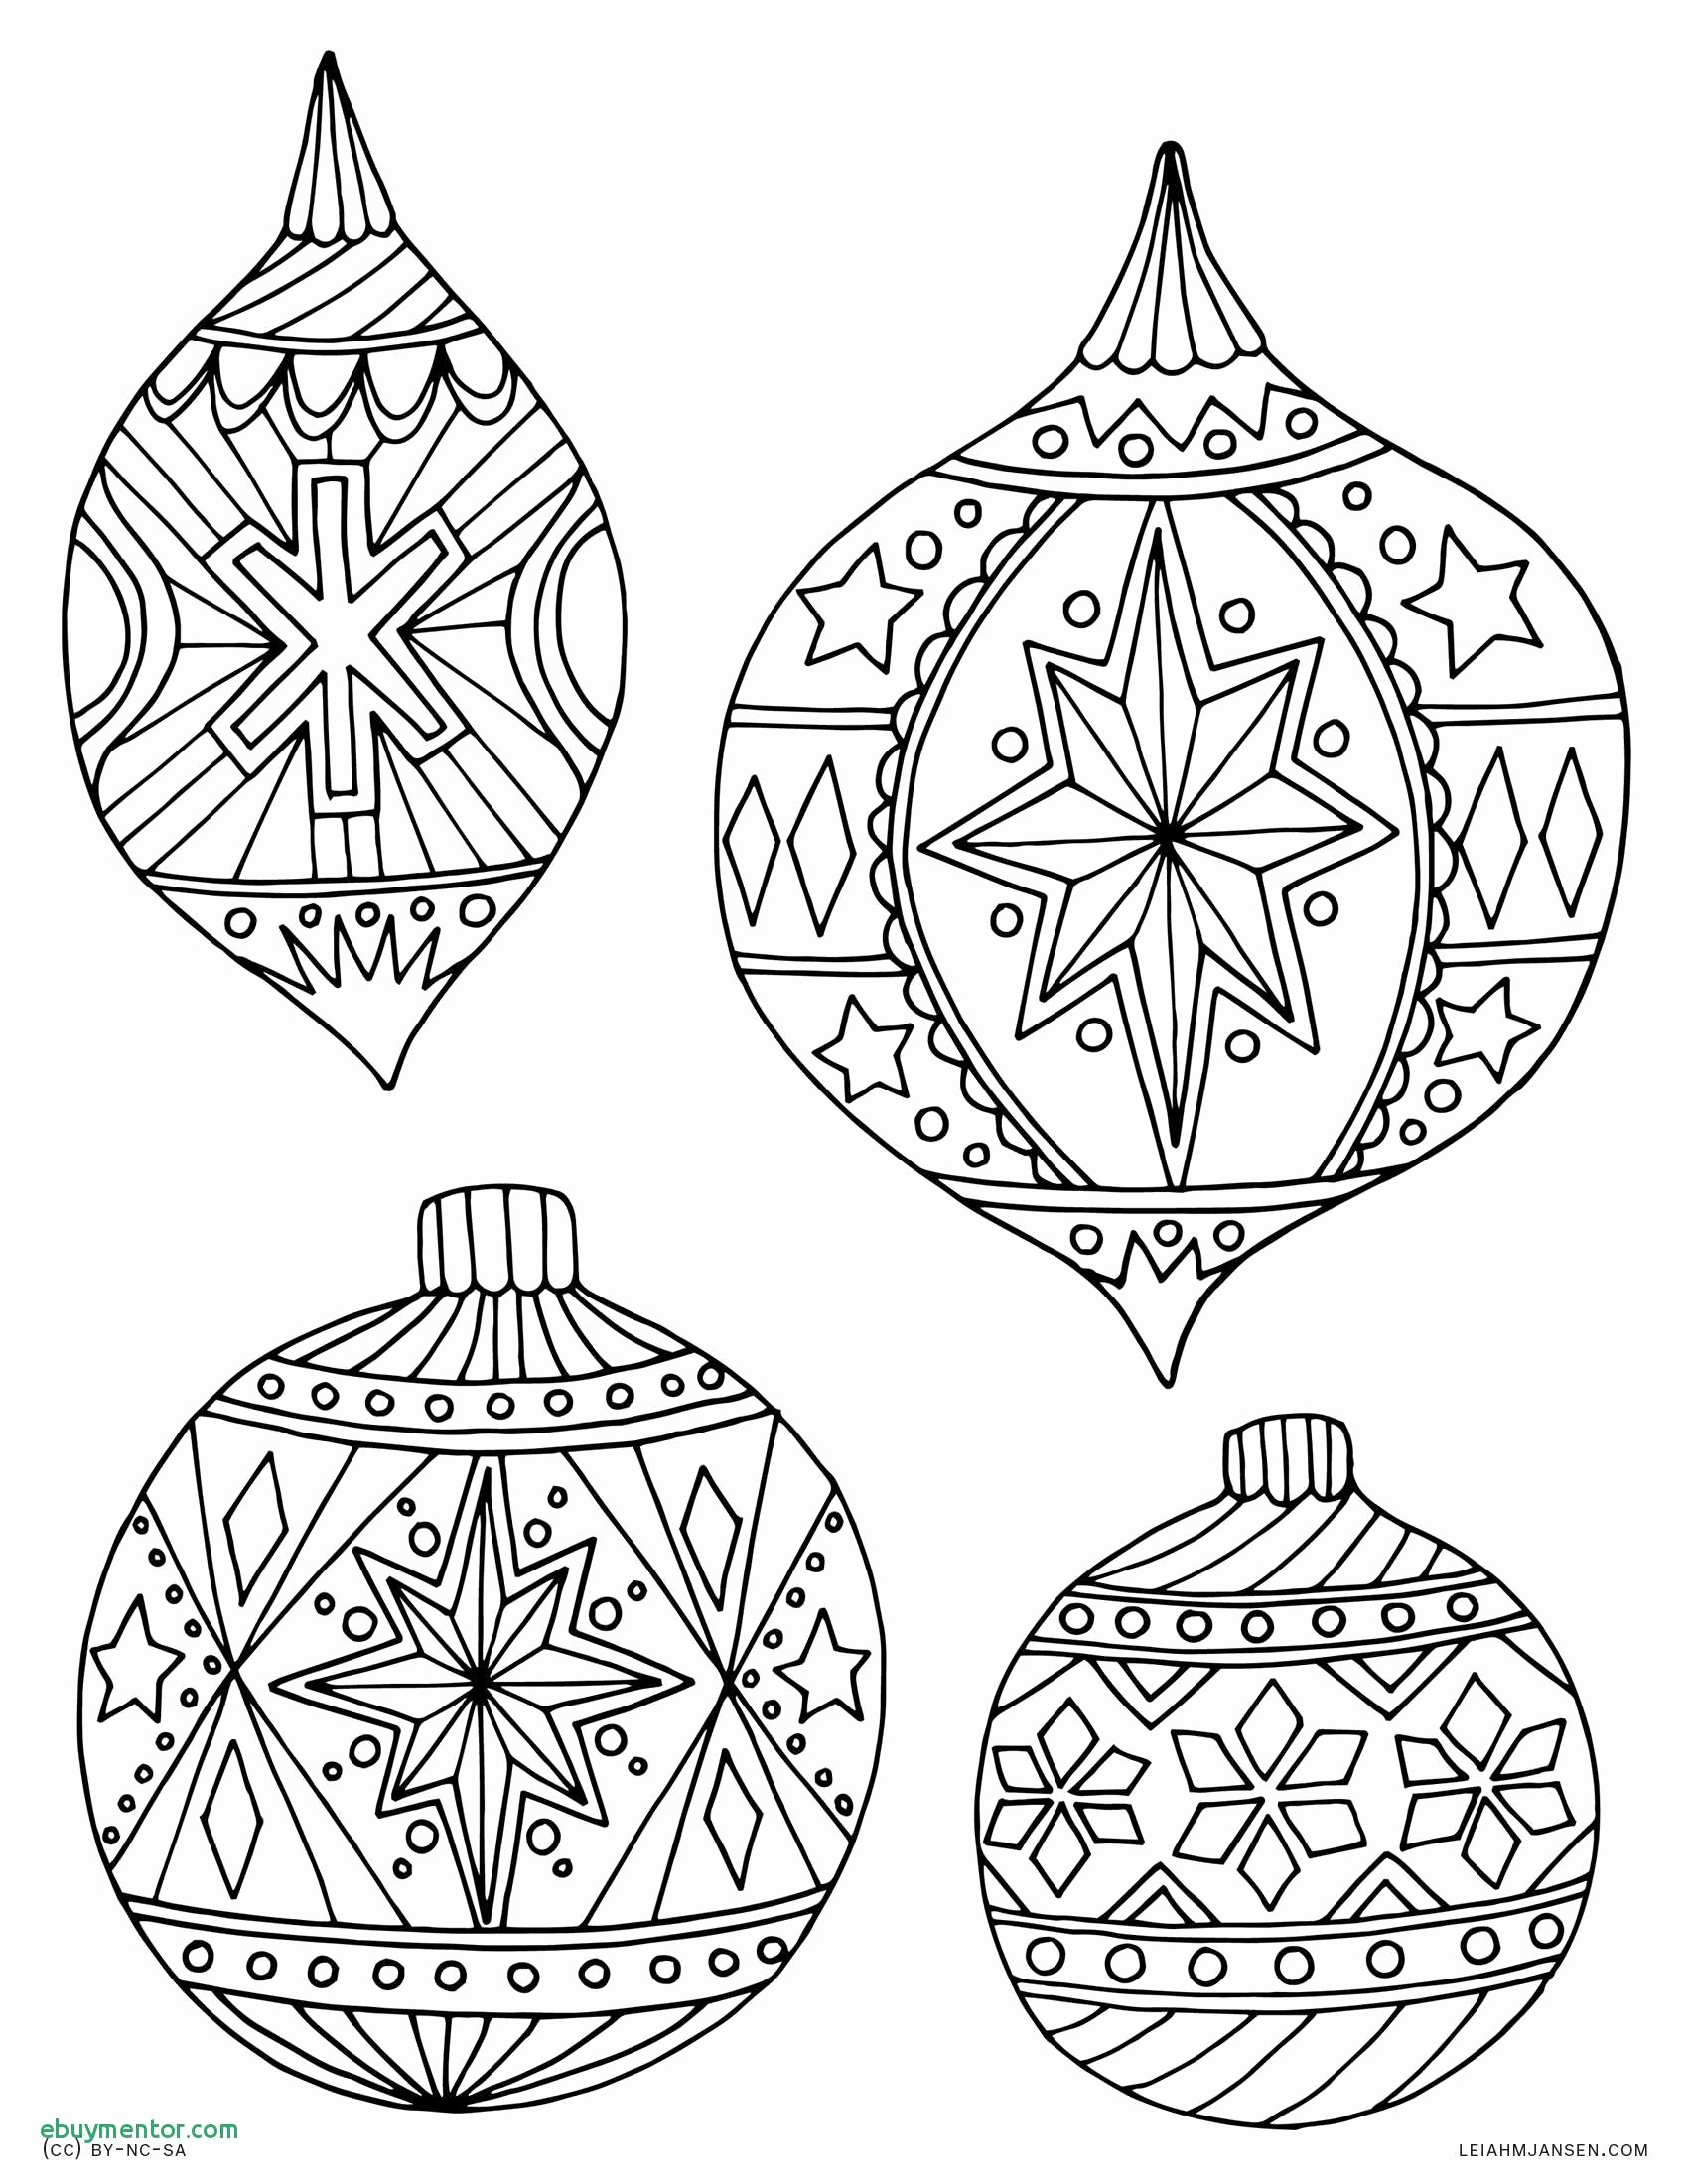 Coloring ~ Coloring Christmas Ornament Color Pages Free Printable - Free Printable Ornaments To Color